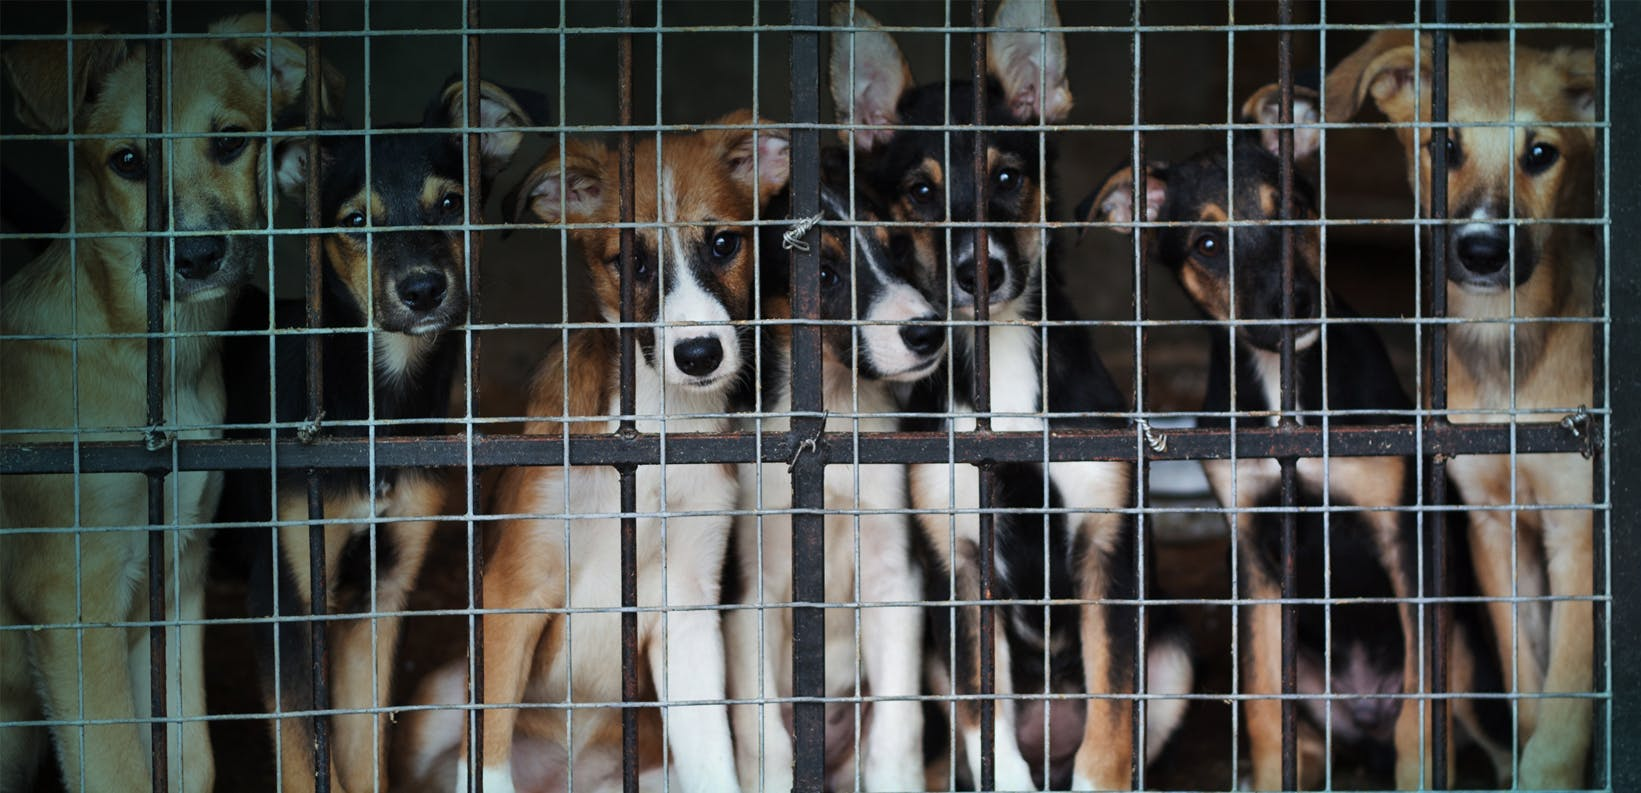 The thorny problem of puppy mills